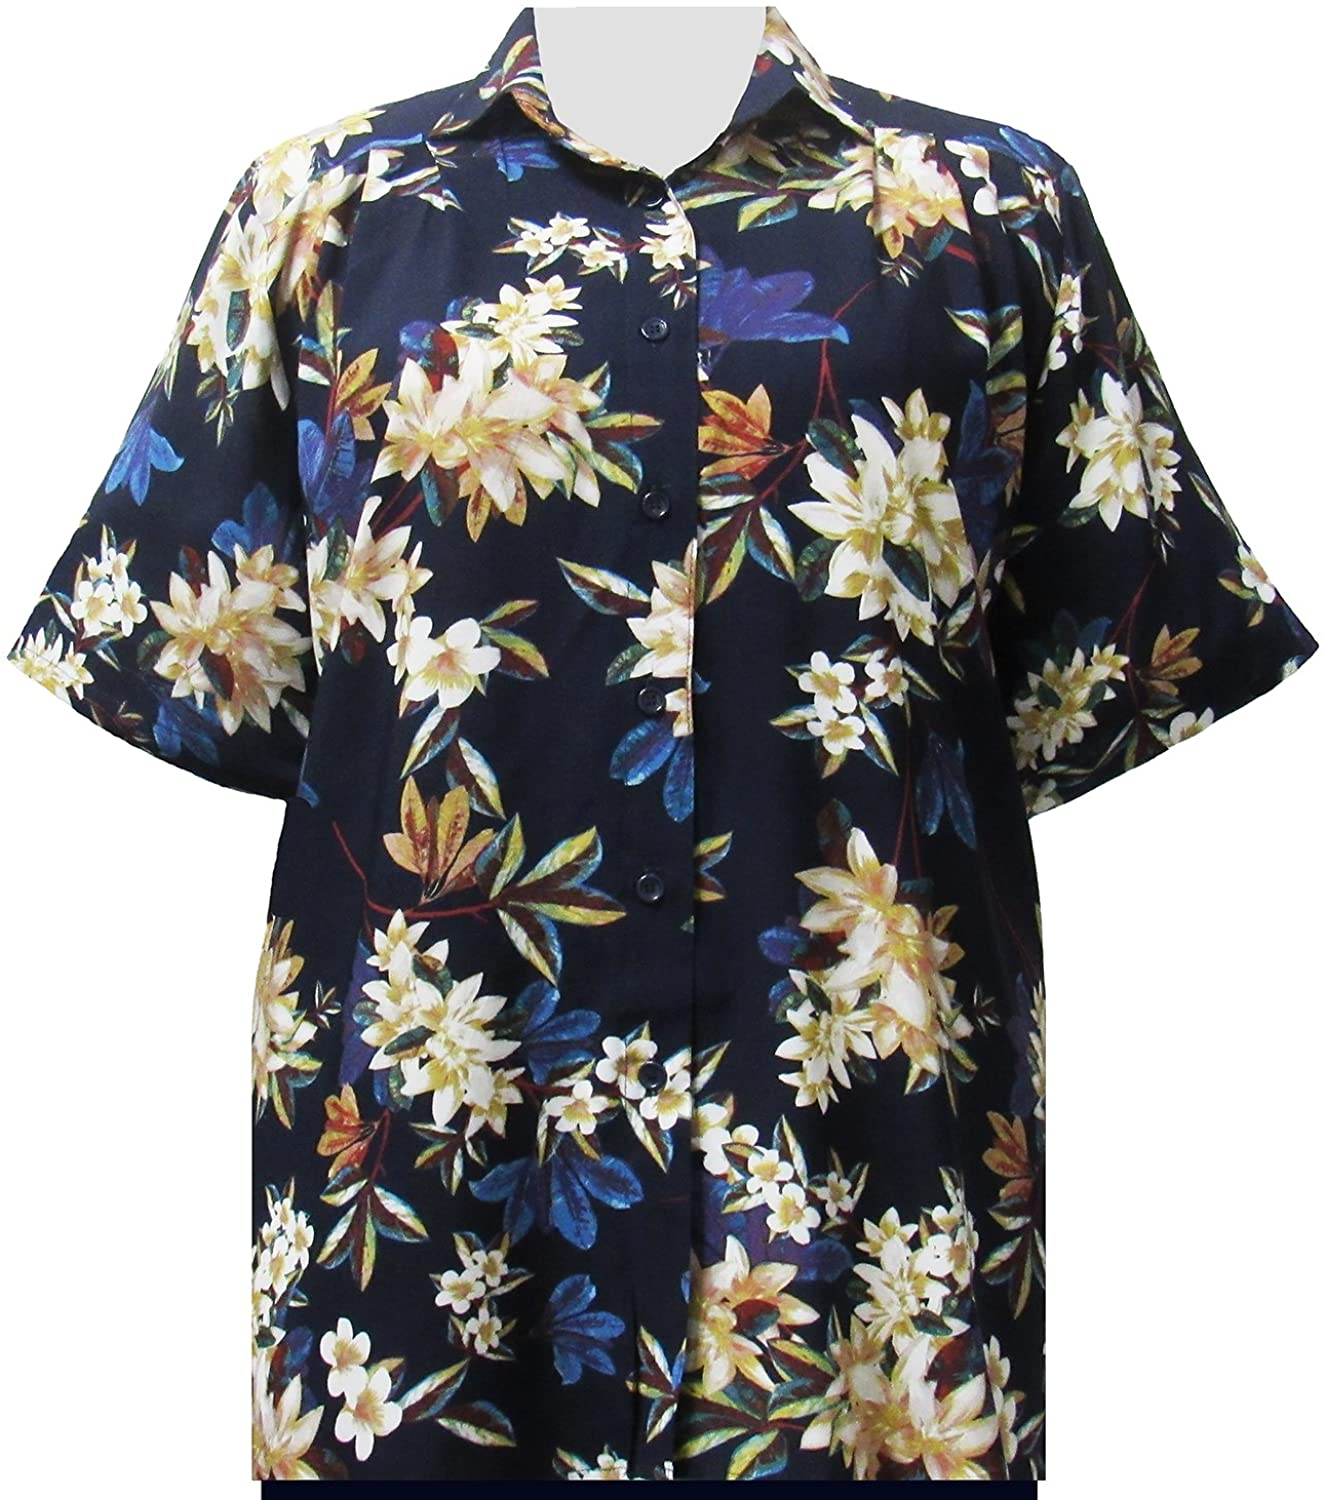 A Personal Touch Navy Botanic Womens Plus Size Blouse